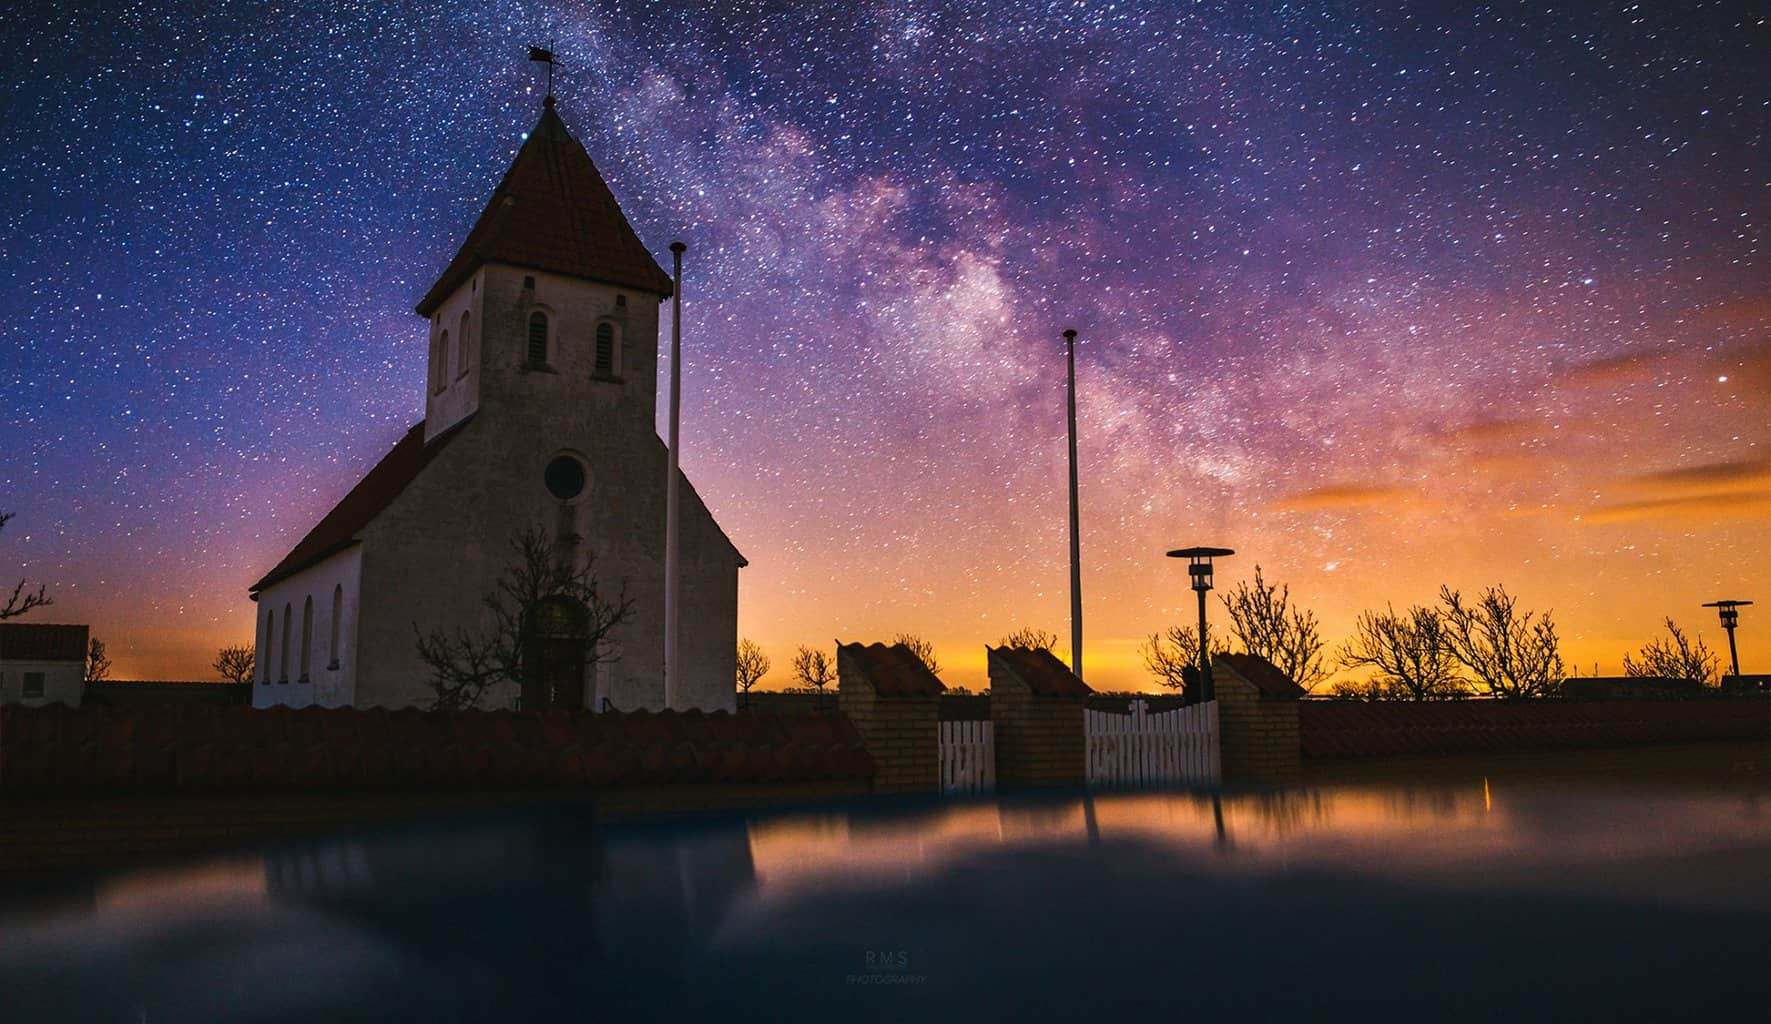 Agerø church and Milky Way taken from the car's rooftop.